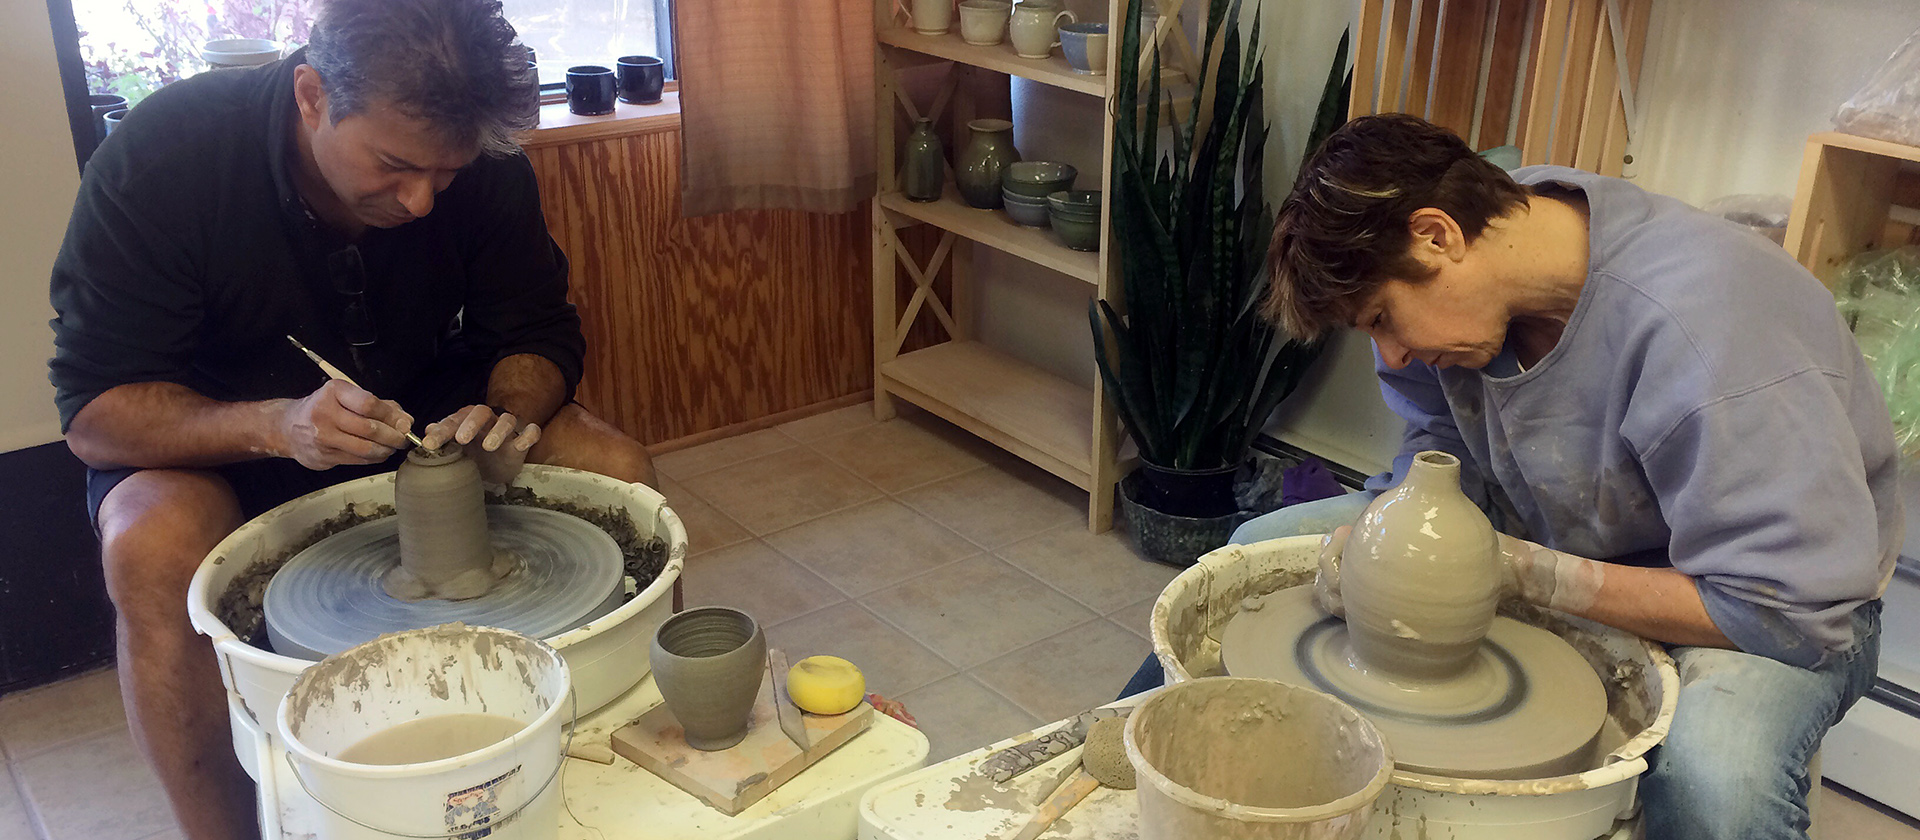 NEXT 8-WEEK POTTERY CLASS TERM BEGINS  FEBRUARY 27th! /// STOP BY TO PURCHASE VALENTINE'S GIFTS DURING CLASS & OPEN STUDIO HOURS OR BY APPOINTMENT!!! /// NEW CLAY SOIRÉE, TILE PAINTING & POTTERY 101 DATES ADDED!!!